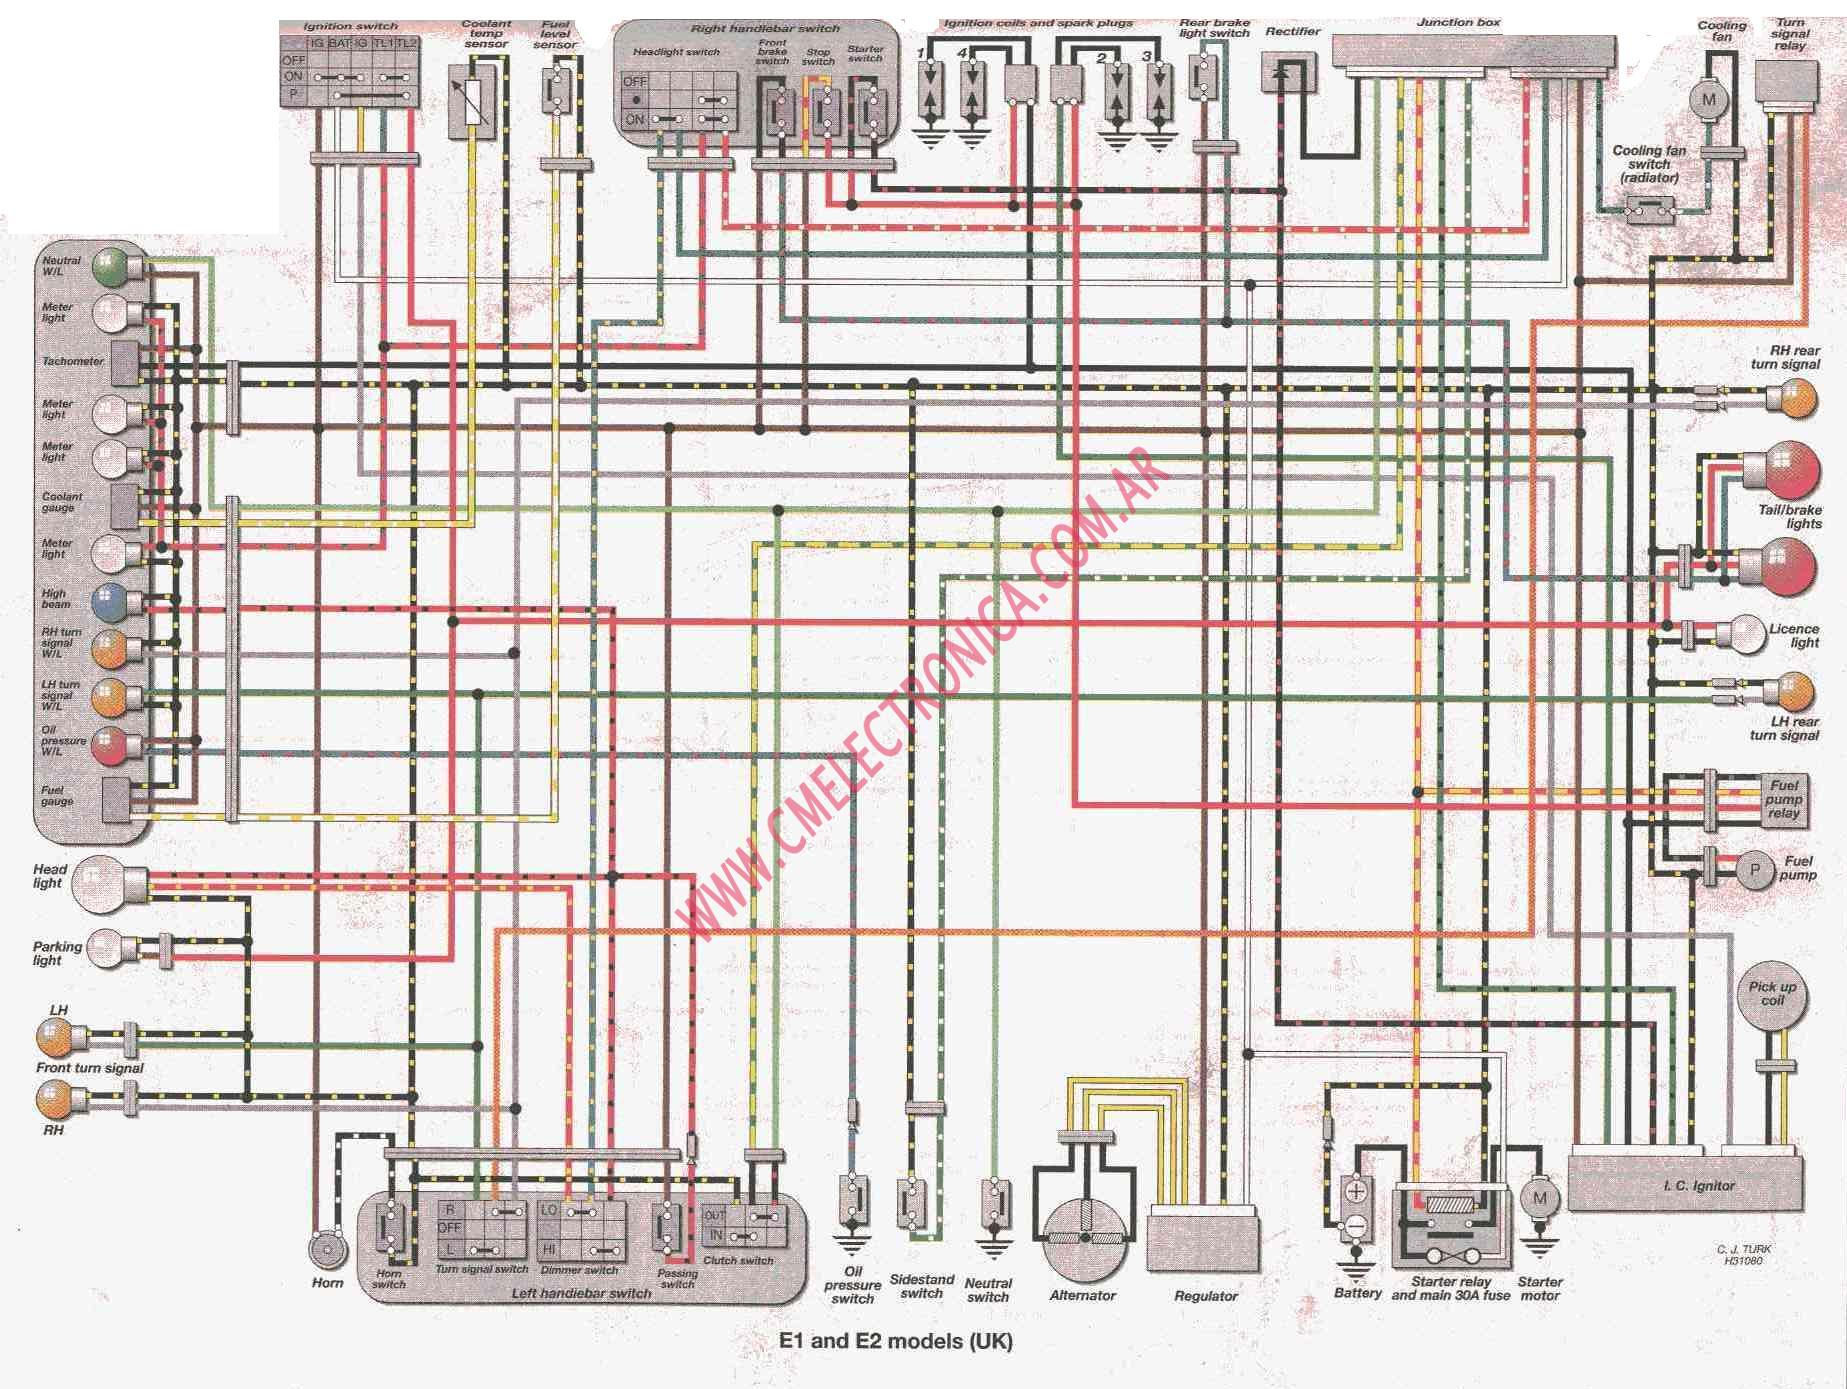 hight resolution of 98 kawasaki zx6r wiring diagram images gallery